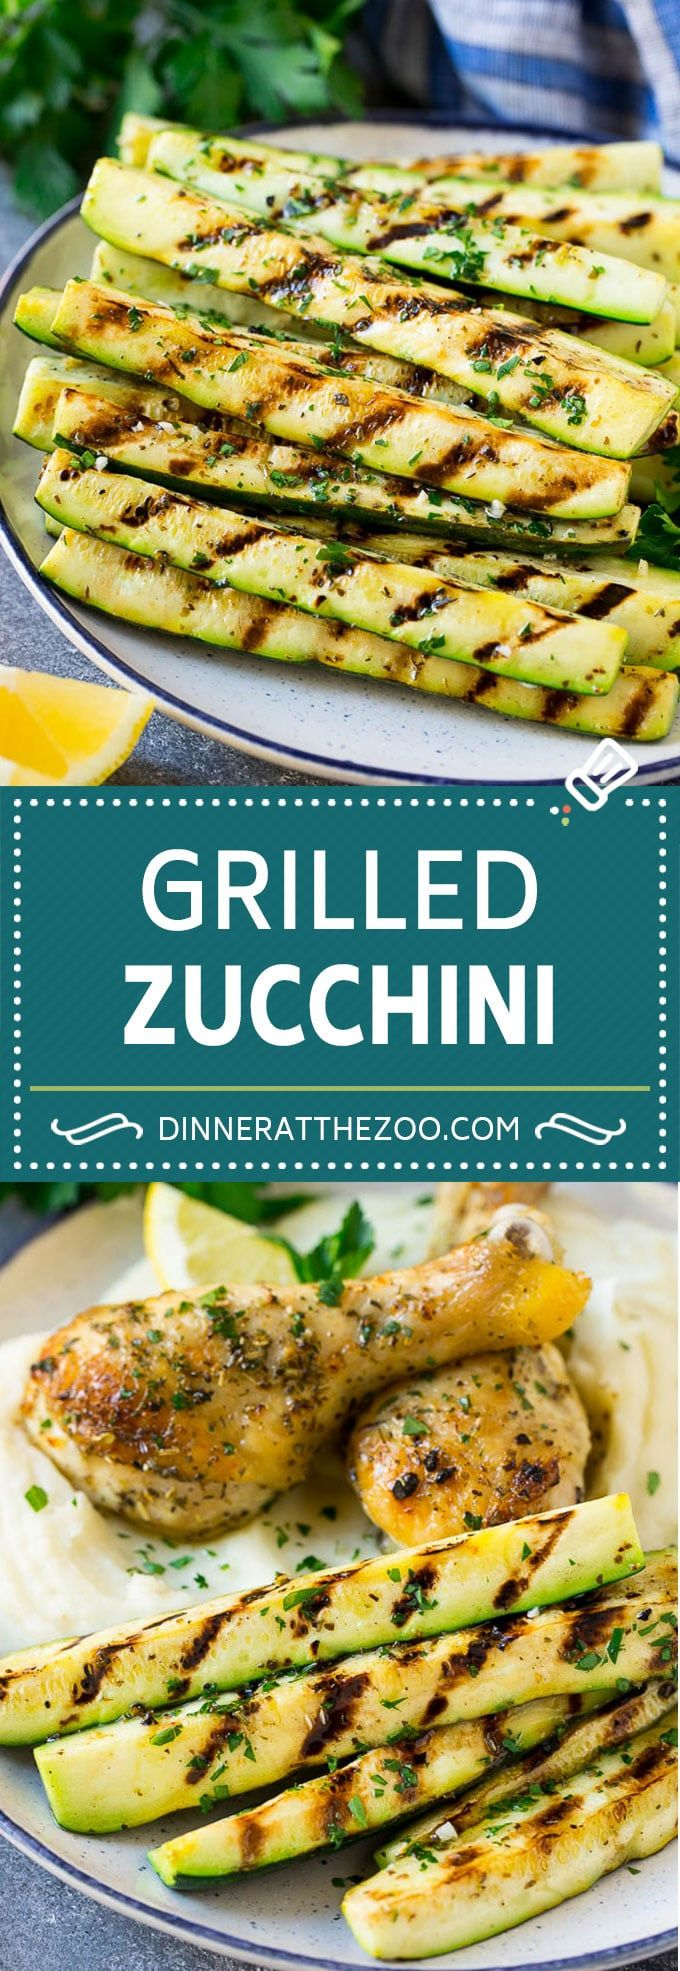 Photo of Grilled Zucchini with Garlic and Herbs